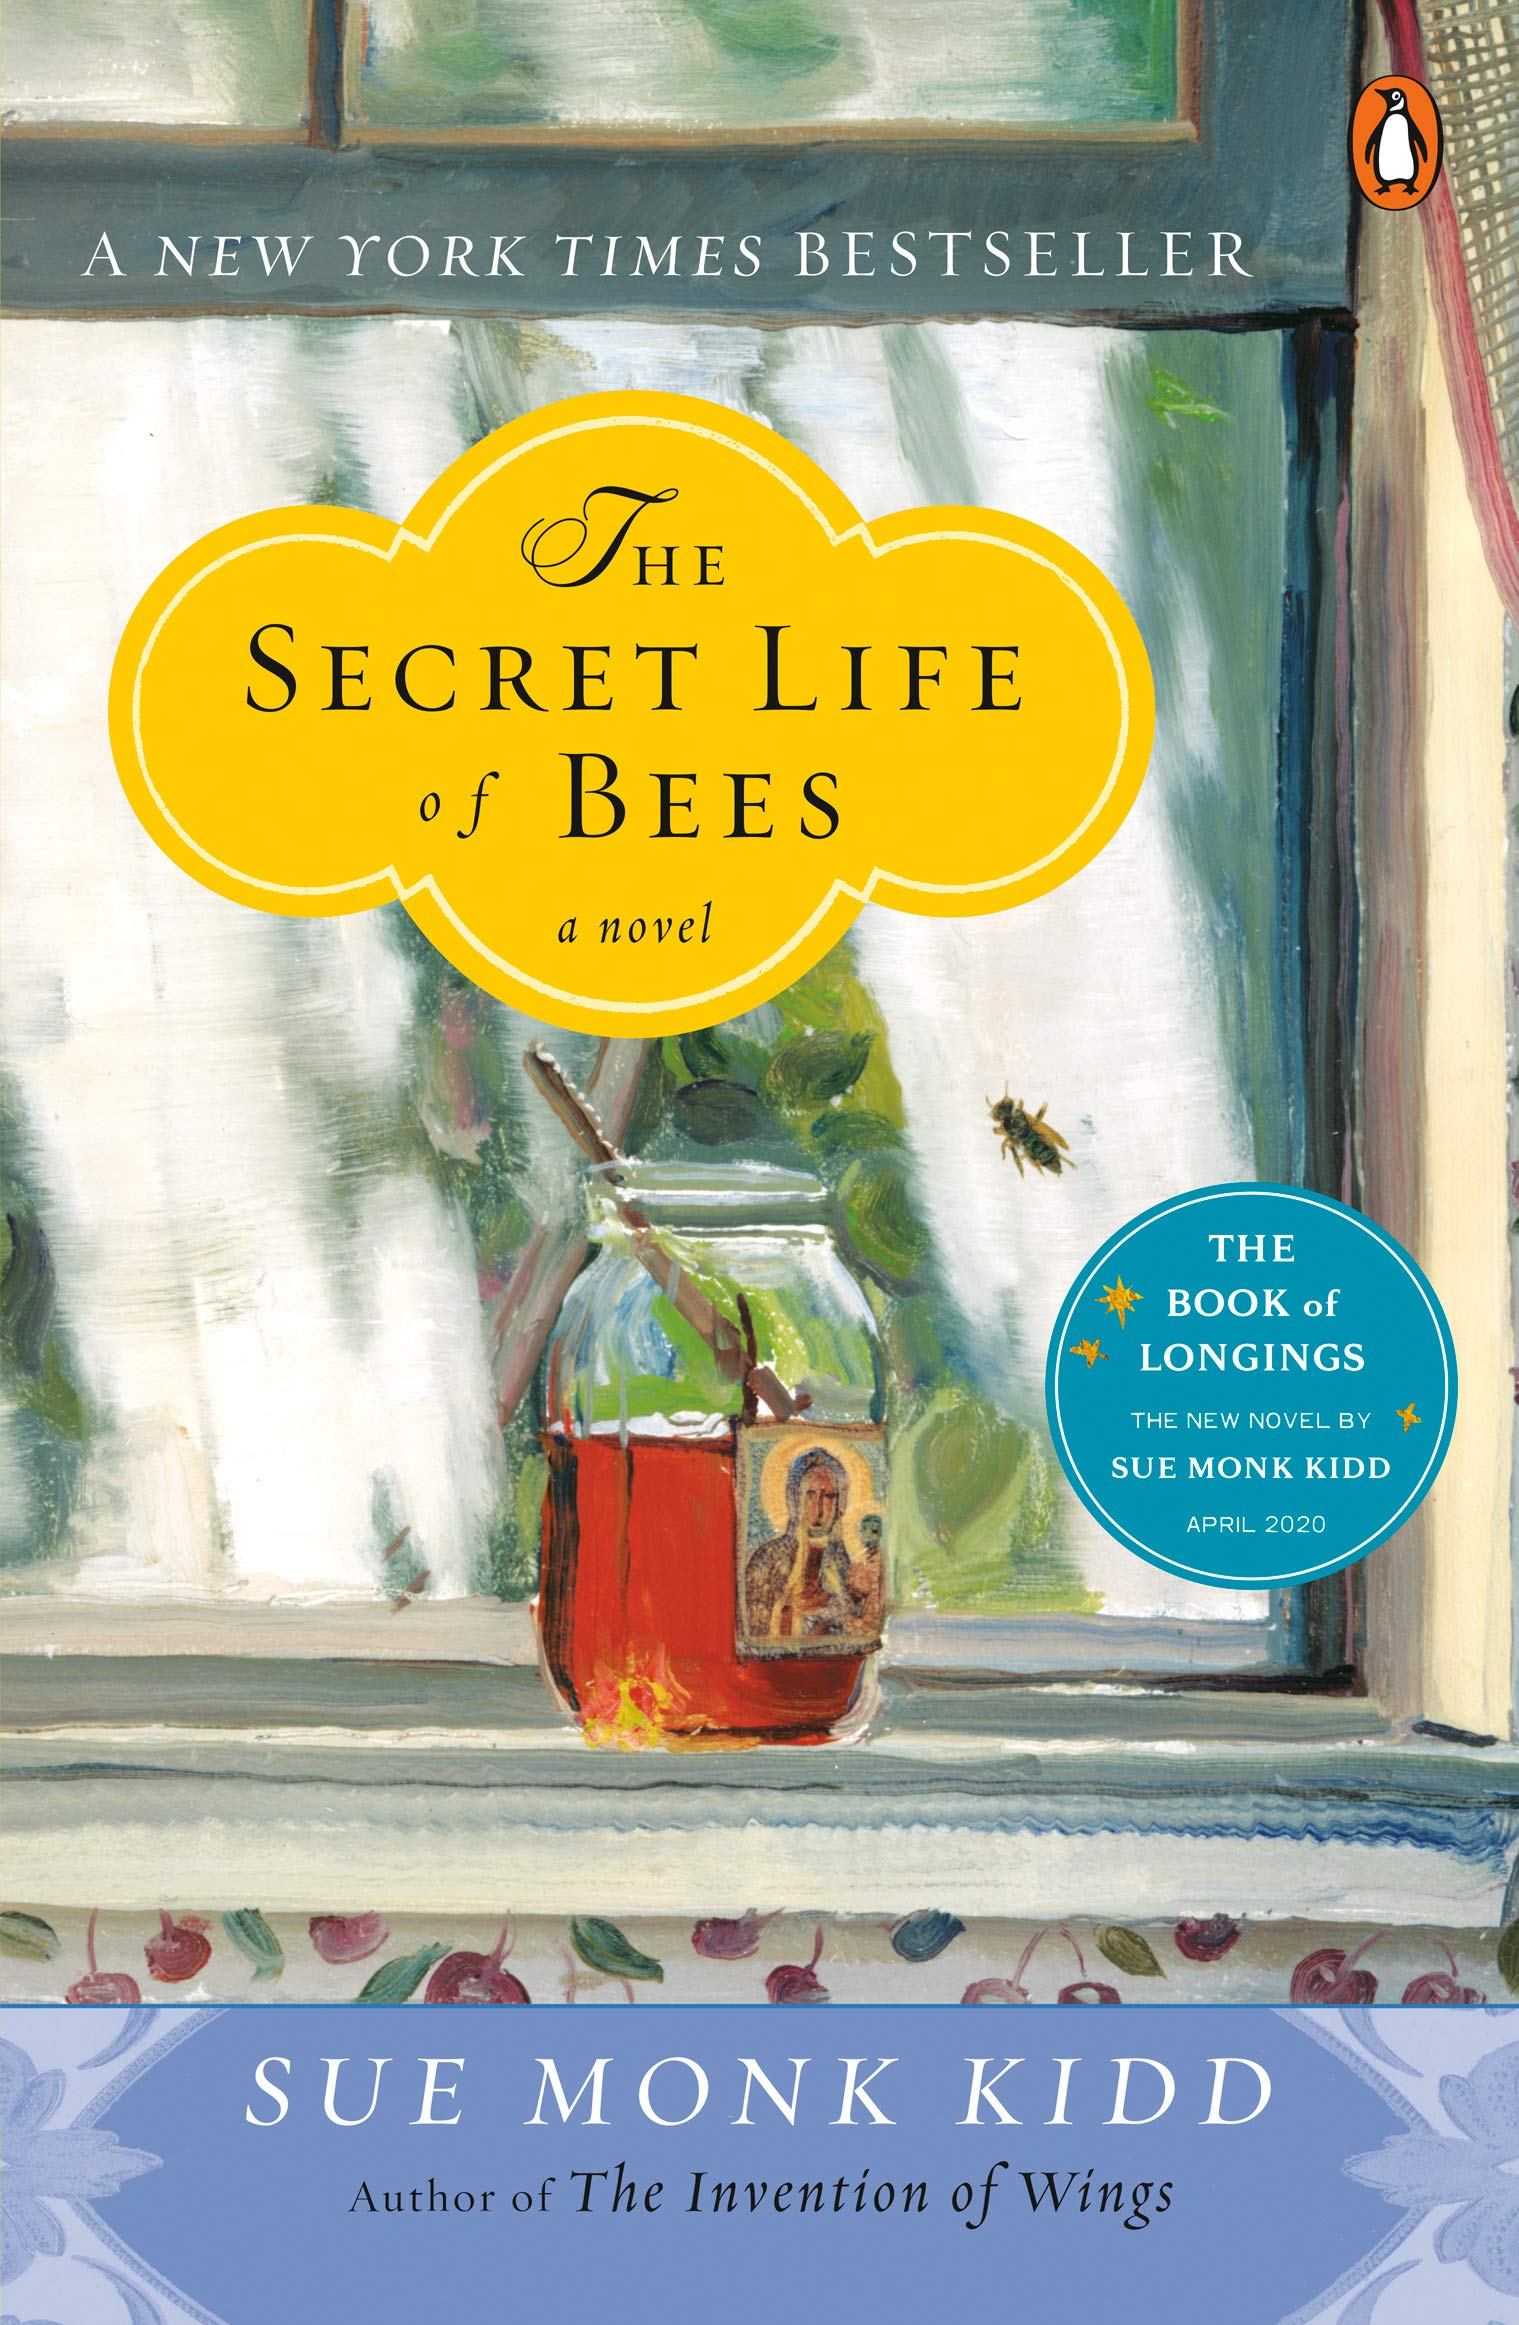 The Secret Life of Bees by Sue Monk Kidd - book cover. #suemonkkidd #books #secretlifeofbees